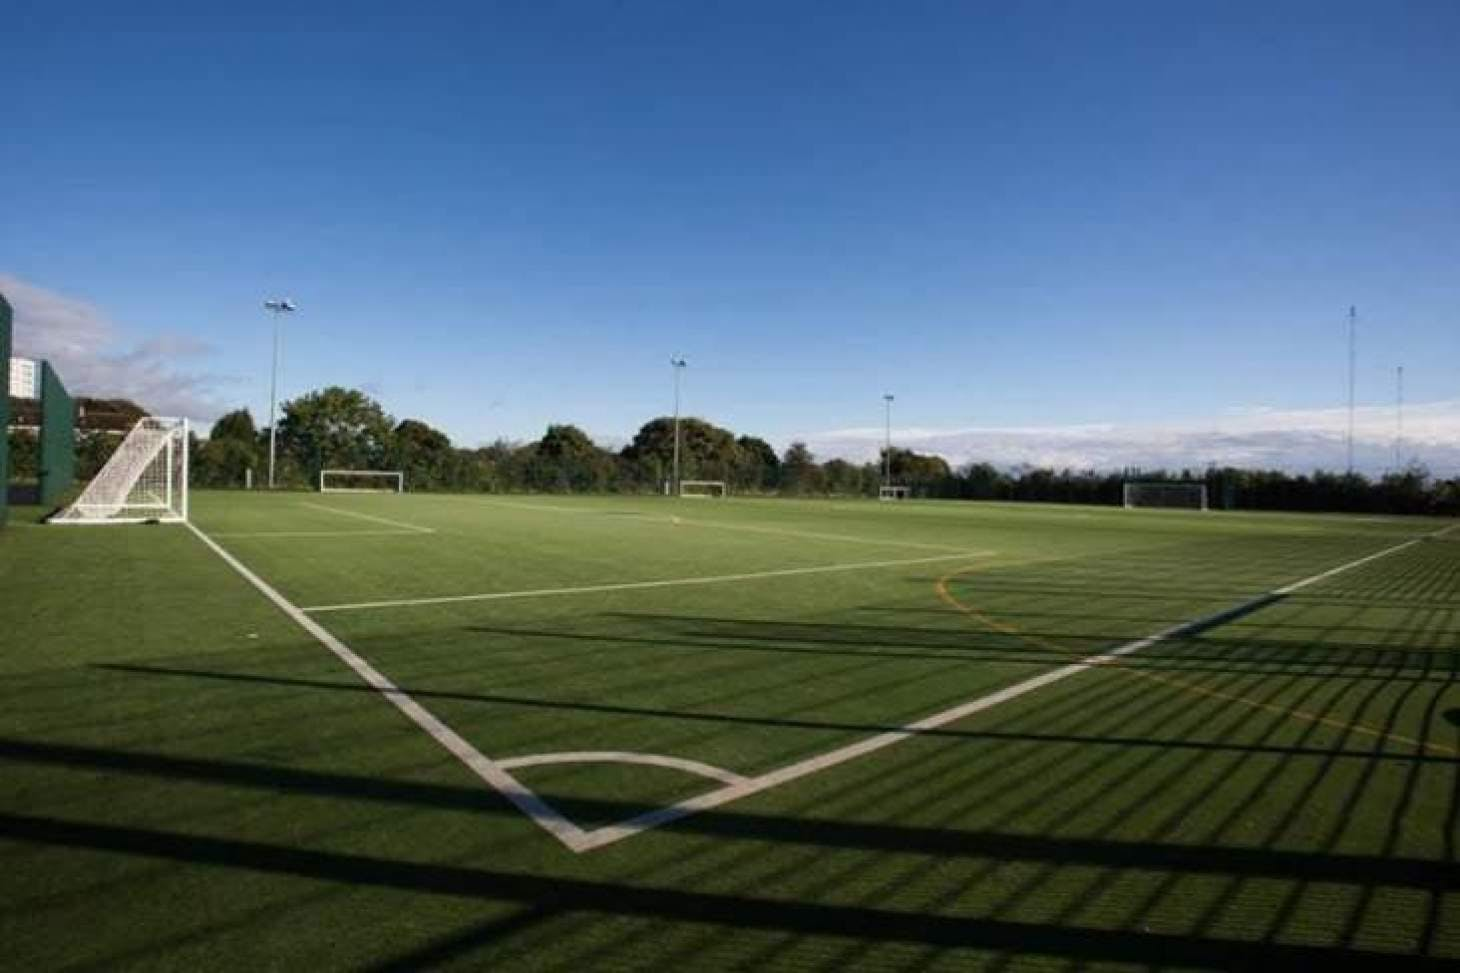 3D Health and Fitness Cardinal Hume 5 a side | 3G Astroturf football pitch